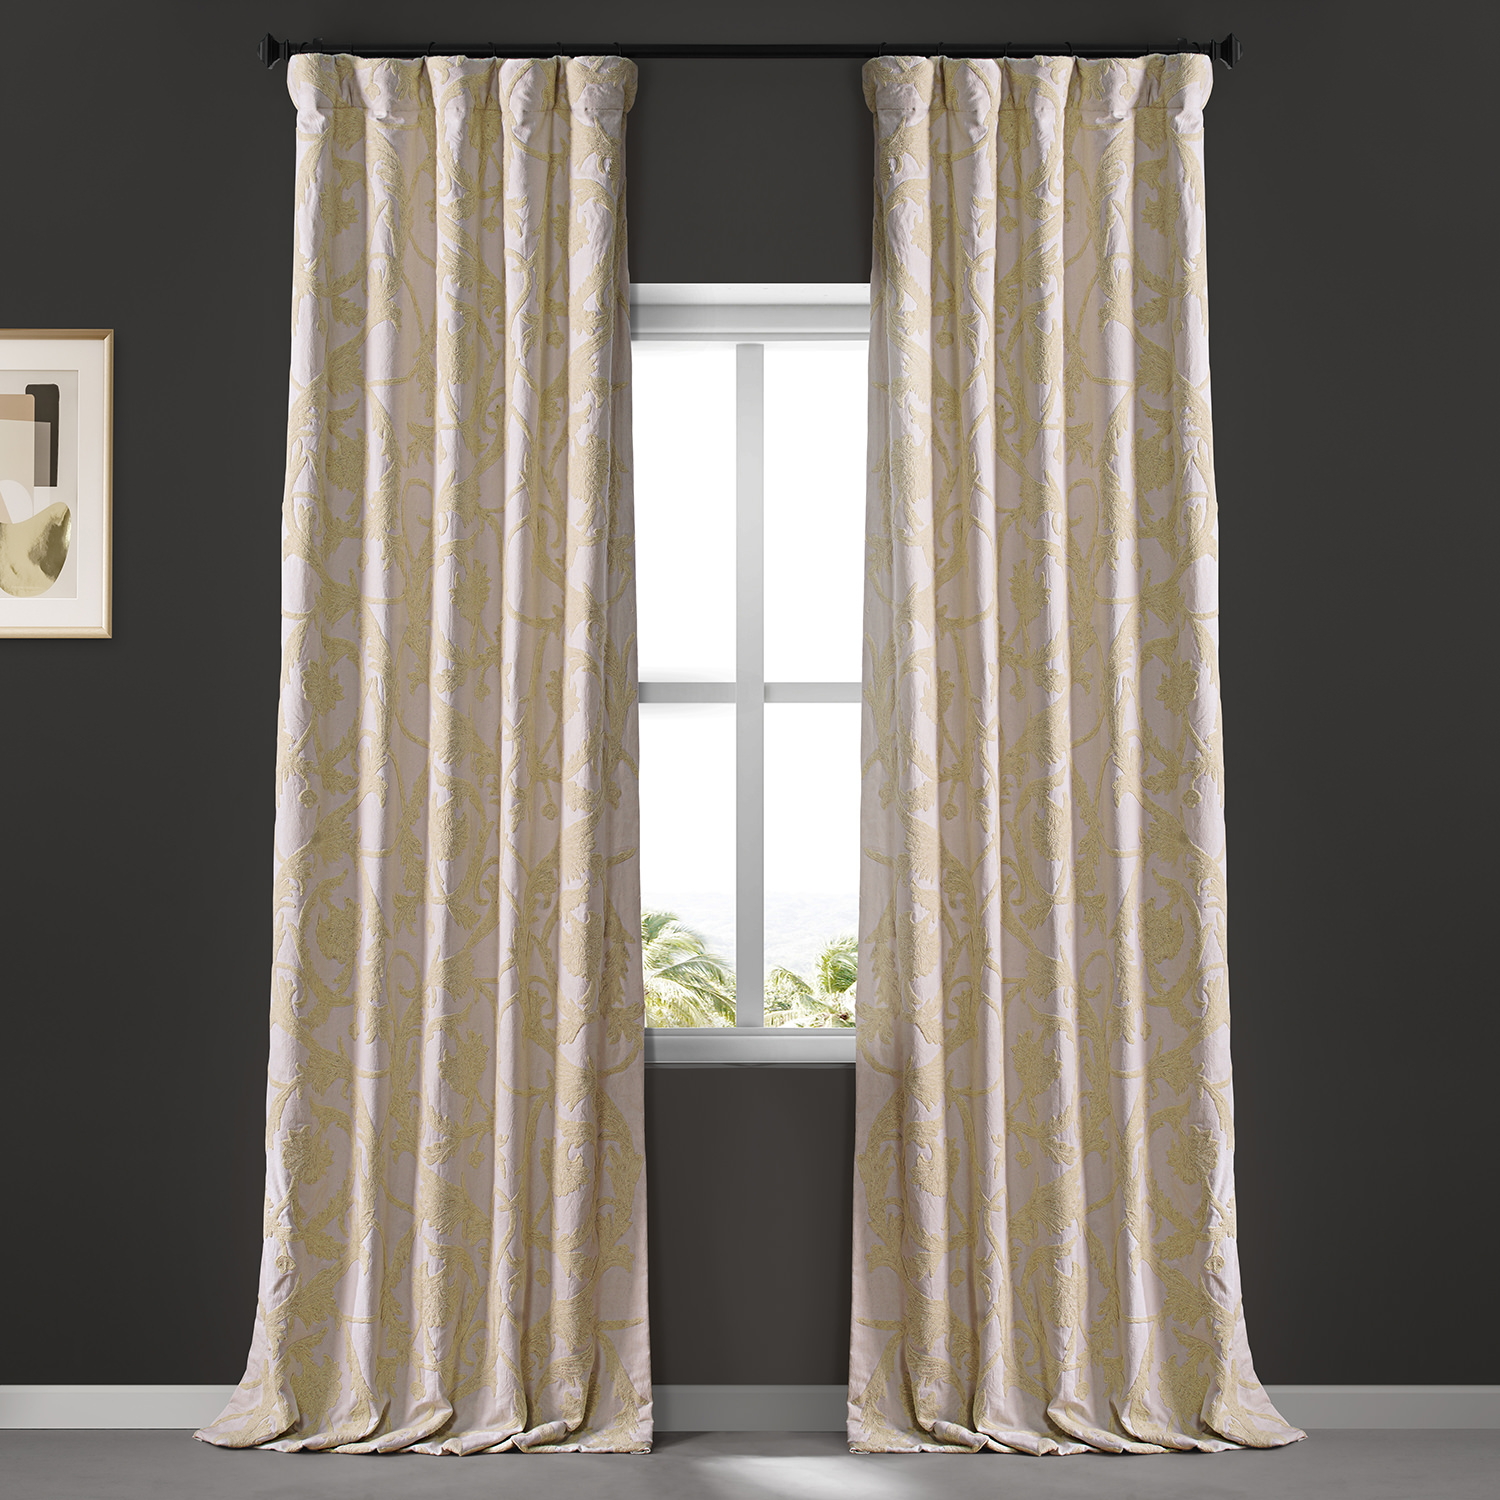 Naomi Embroidered Cotton Crewel Curtain